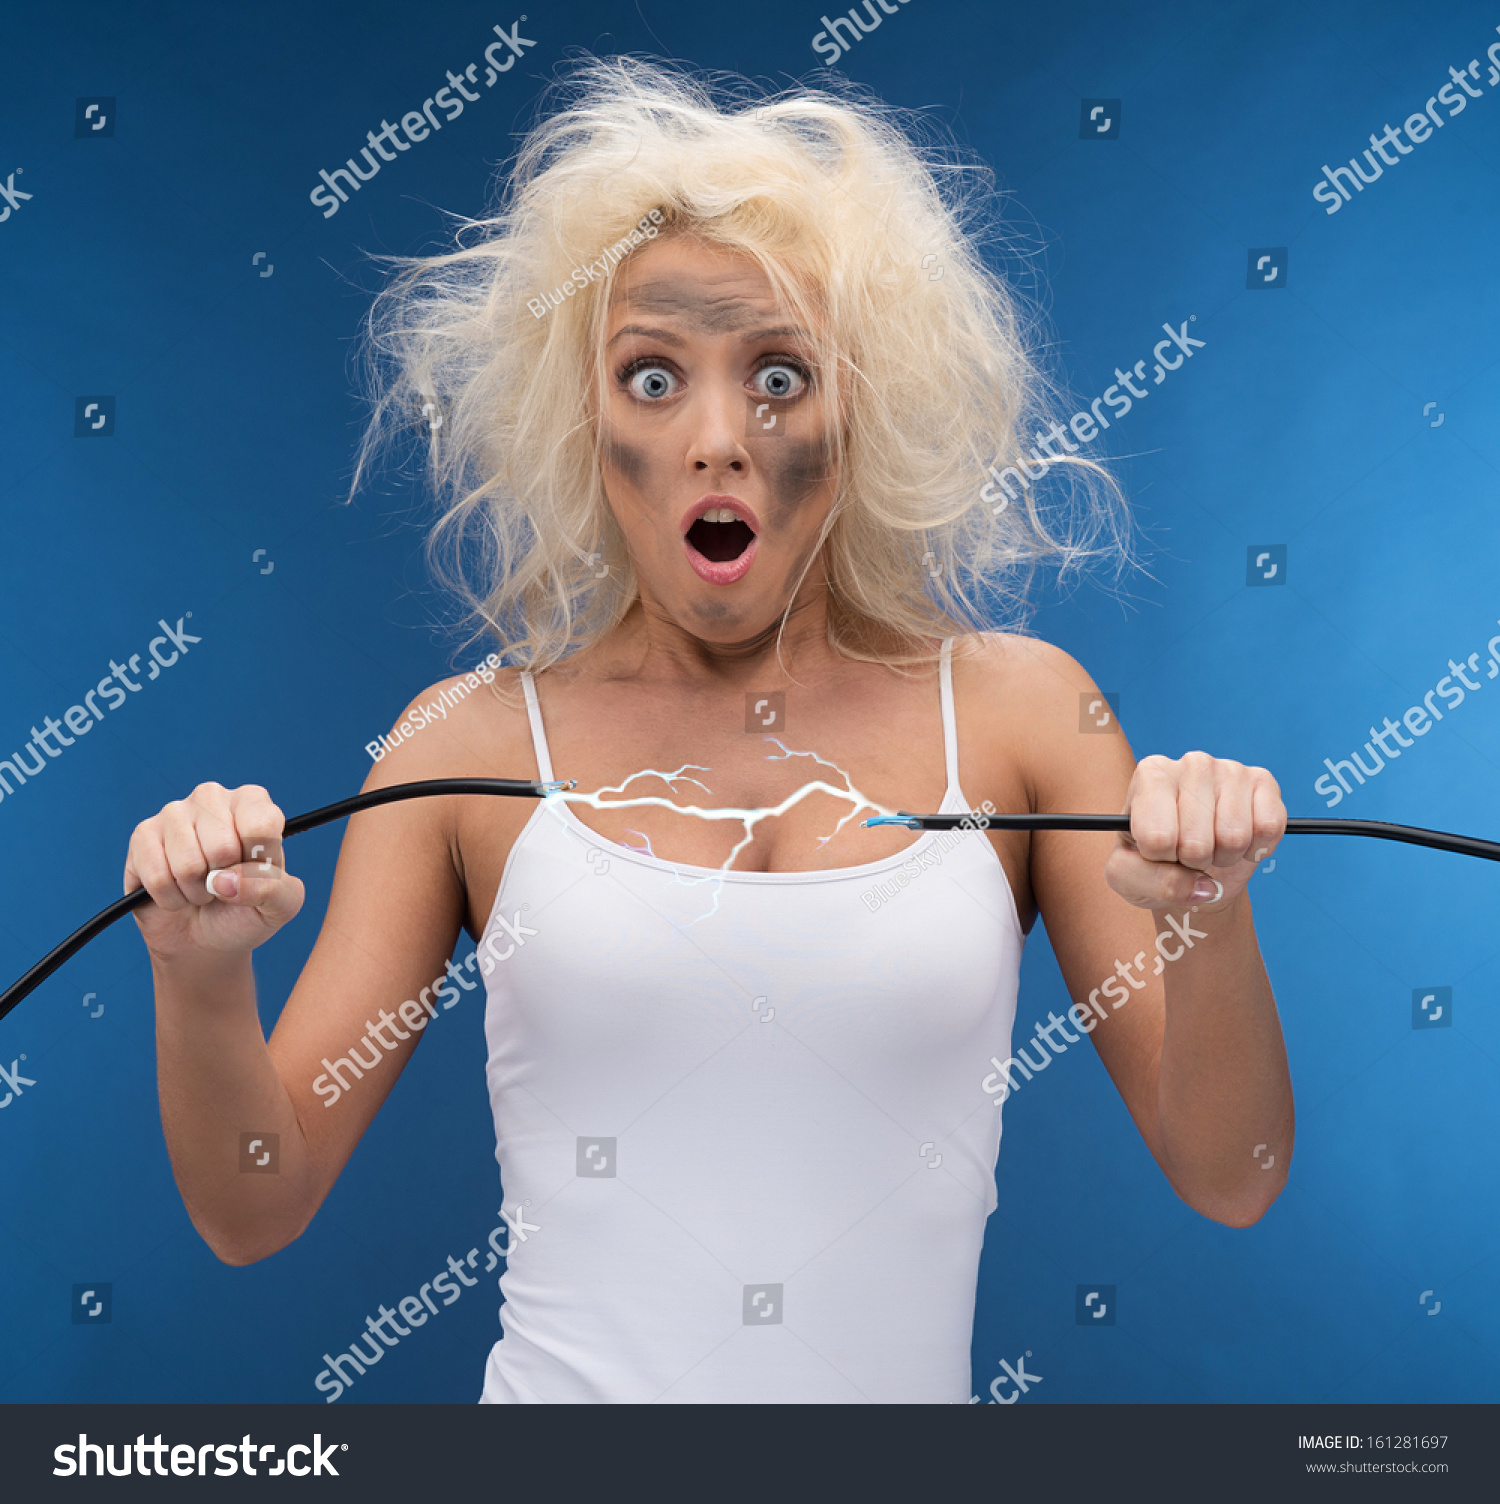 http://image.shutterstock.com/z/stock-photo-funny-girl-having-problem-with-electricity-electrical-shock-161281697.jpg